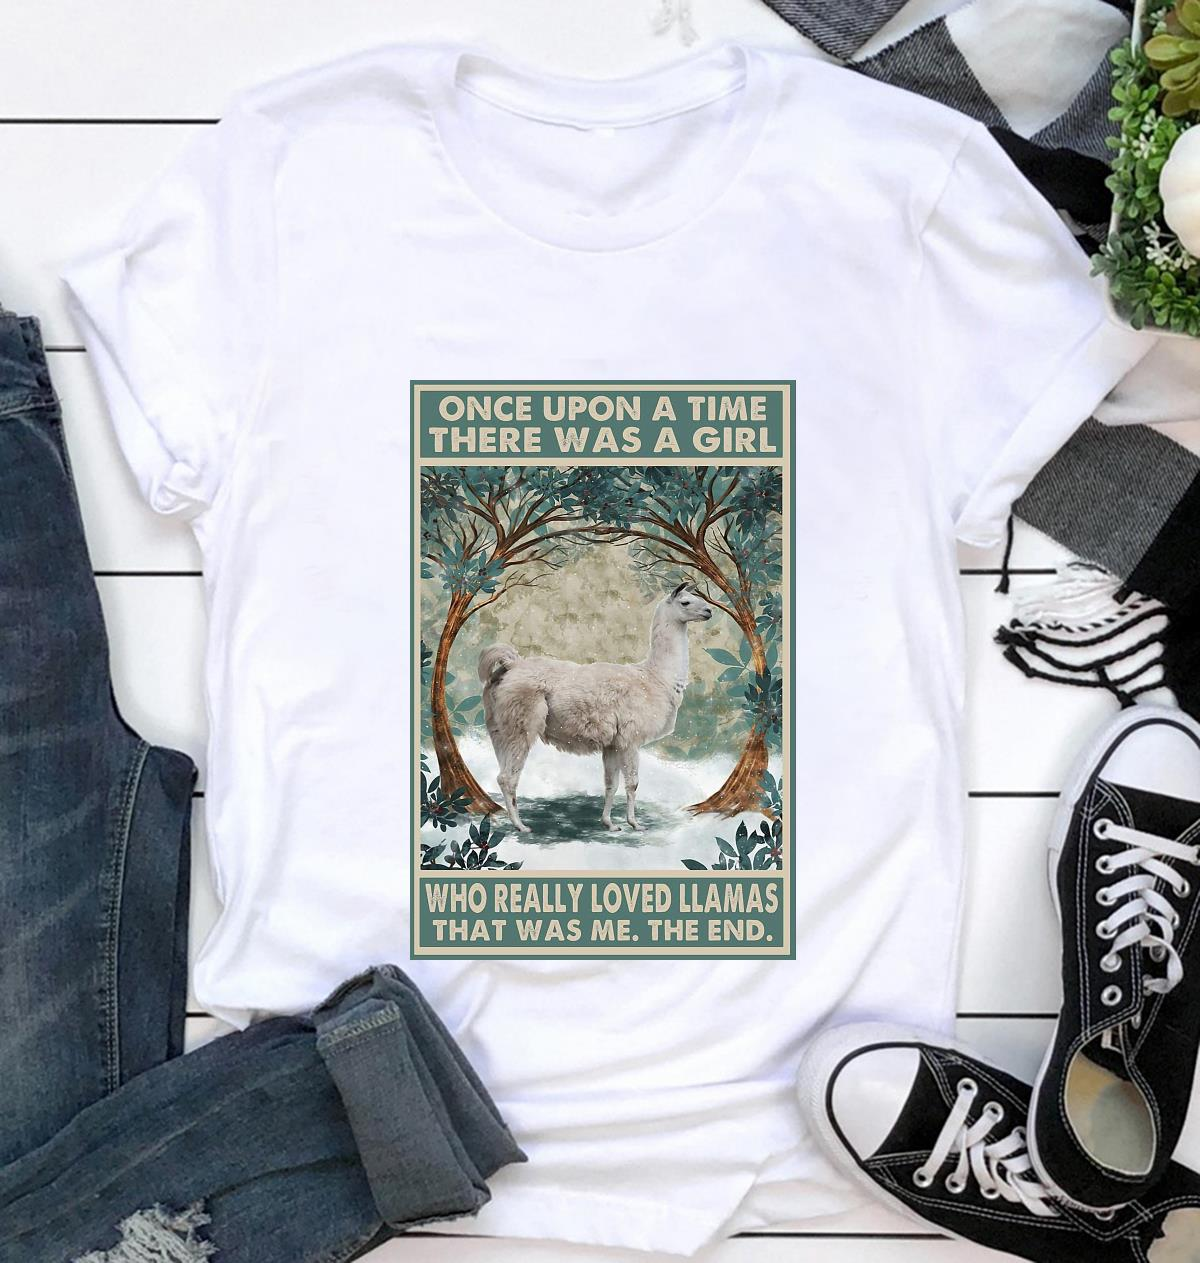 Once upon a time girl really loved Llamas poster t-shirt